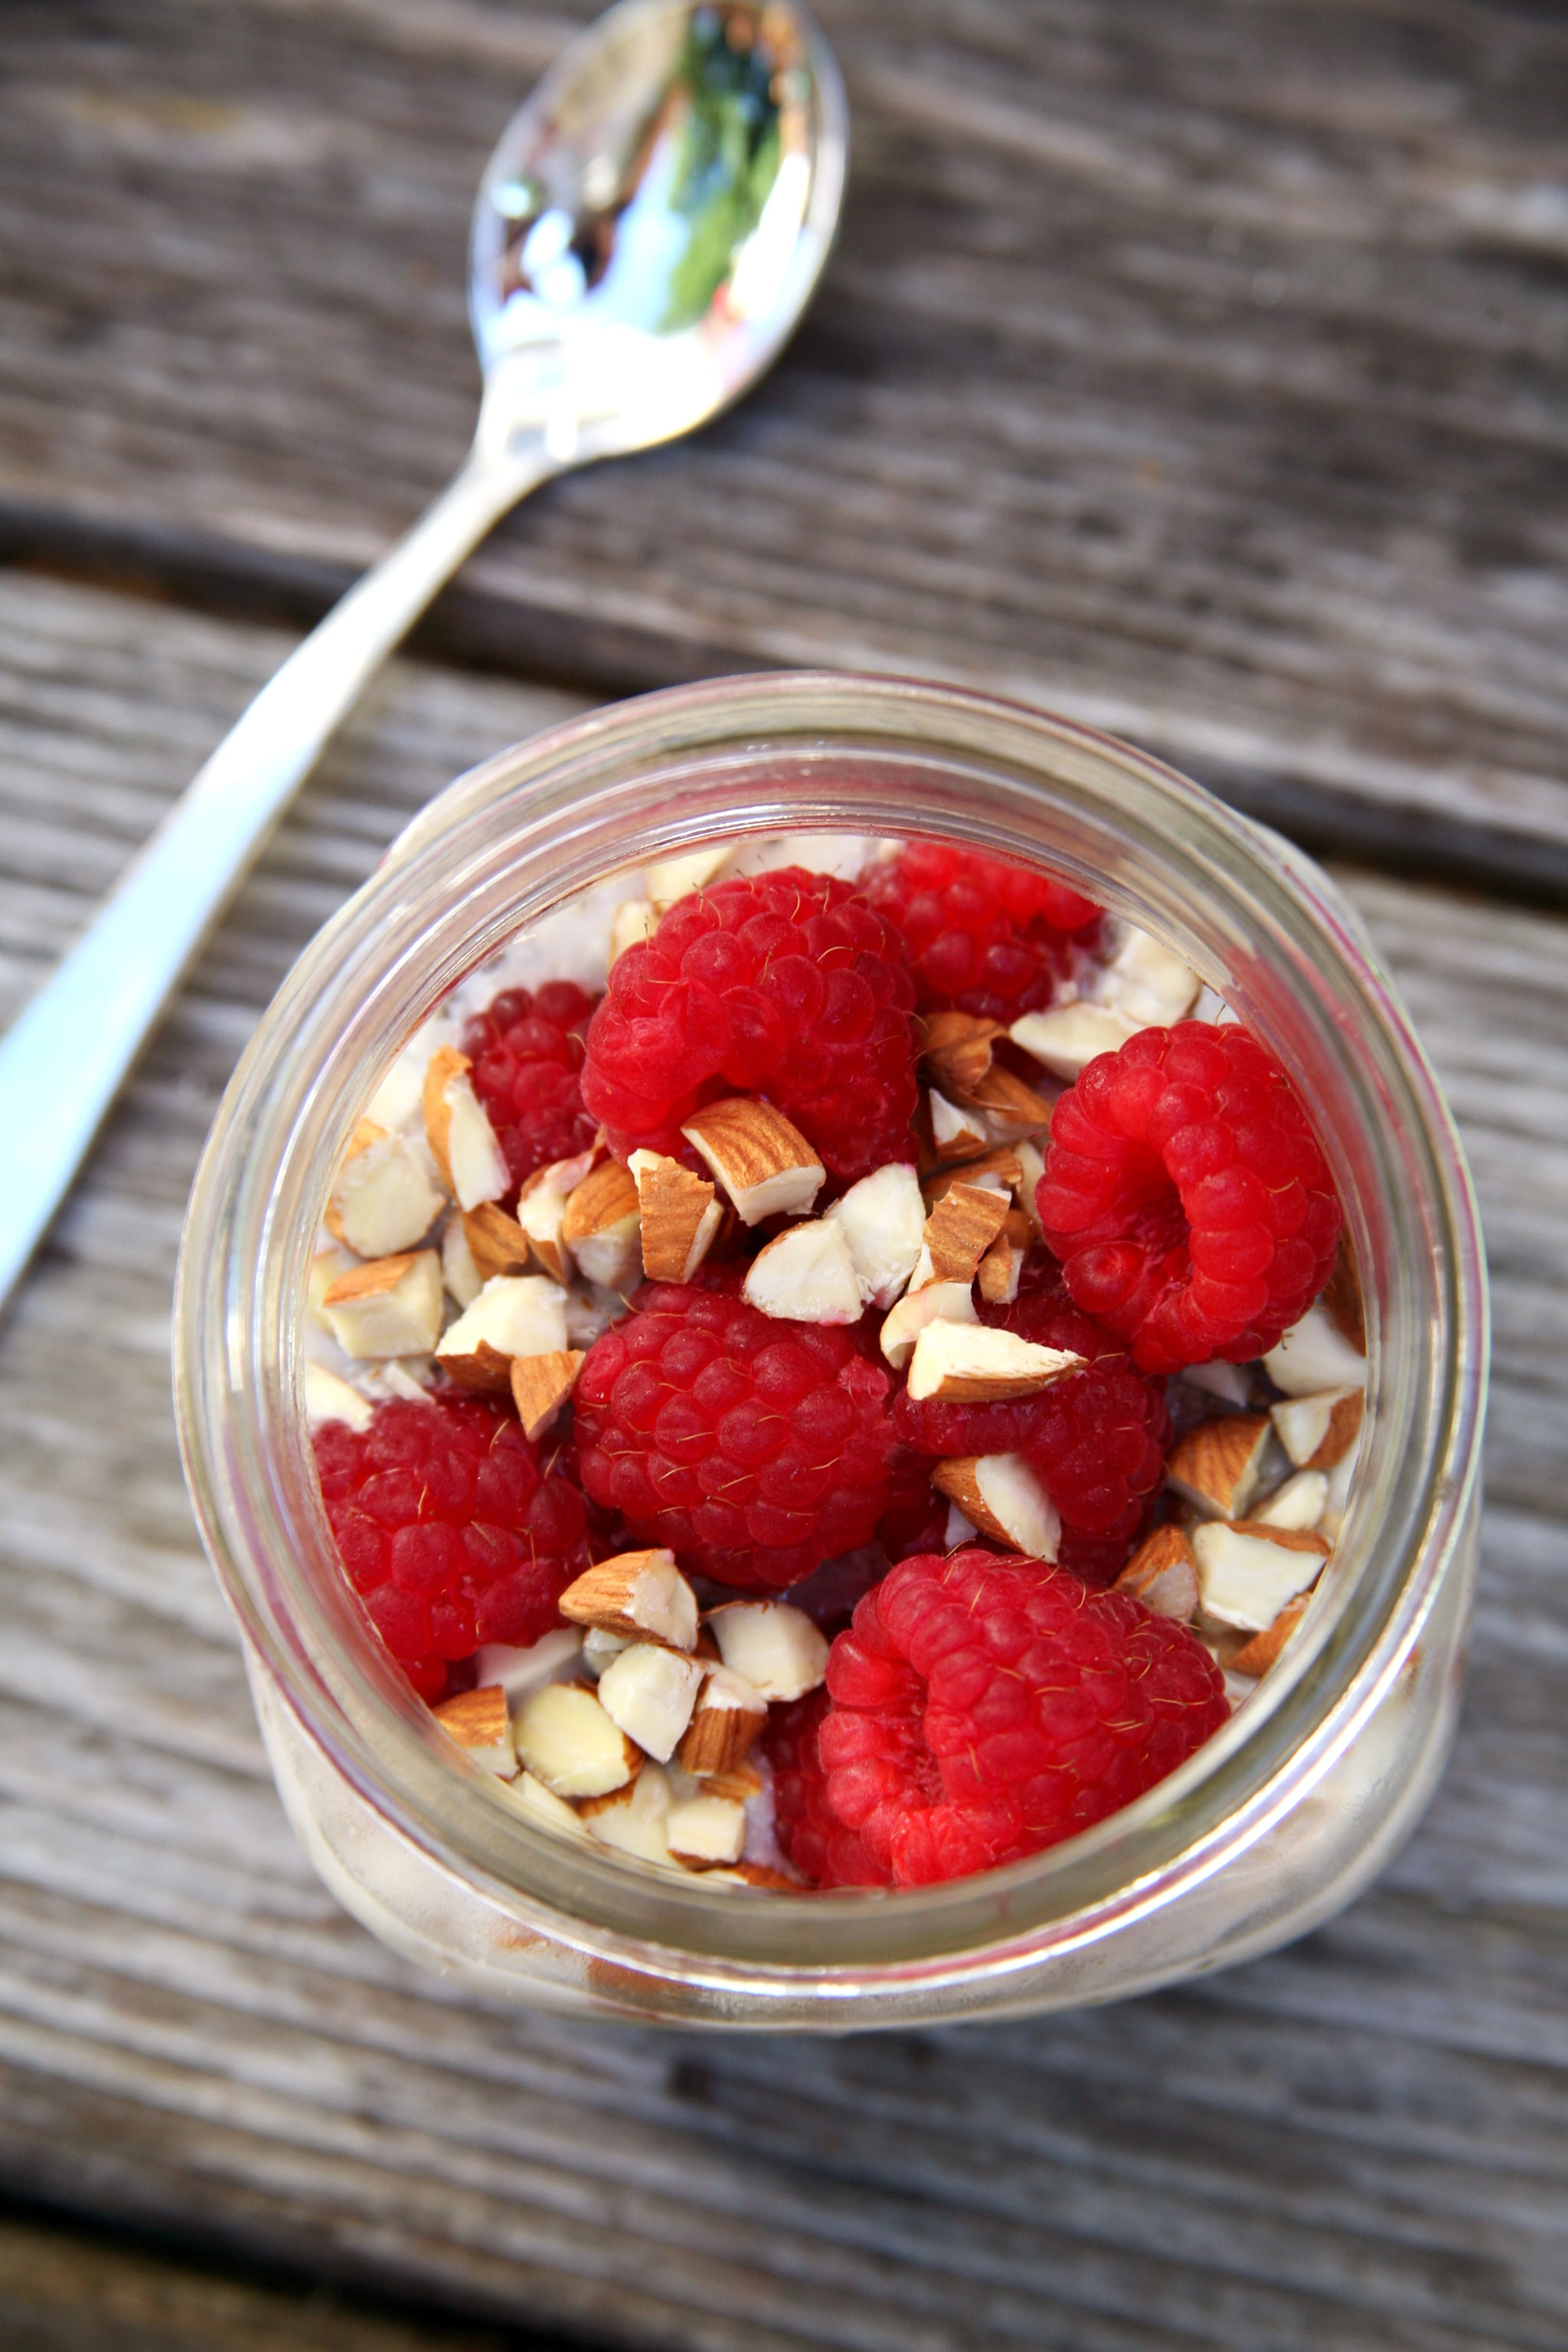 High-Protein Vanilla Almond Raspberry Overnight Oats Offers Almost 17 Grams